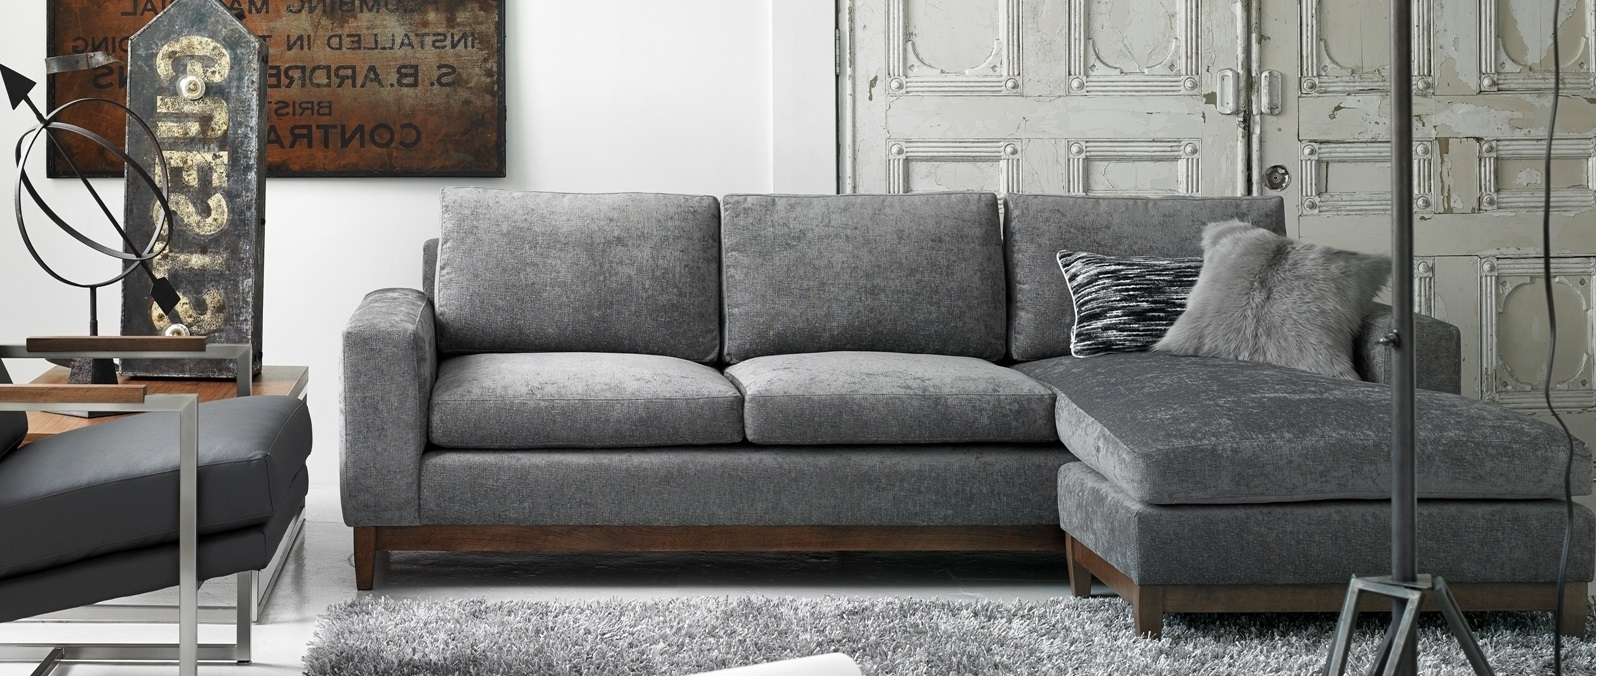 Most Recent Montreal Sectional Sofas For Modern Furniture Store Montreal And Ottawa (View 4 of 15)